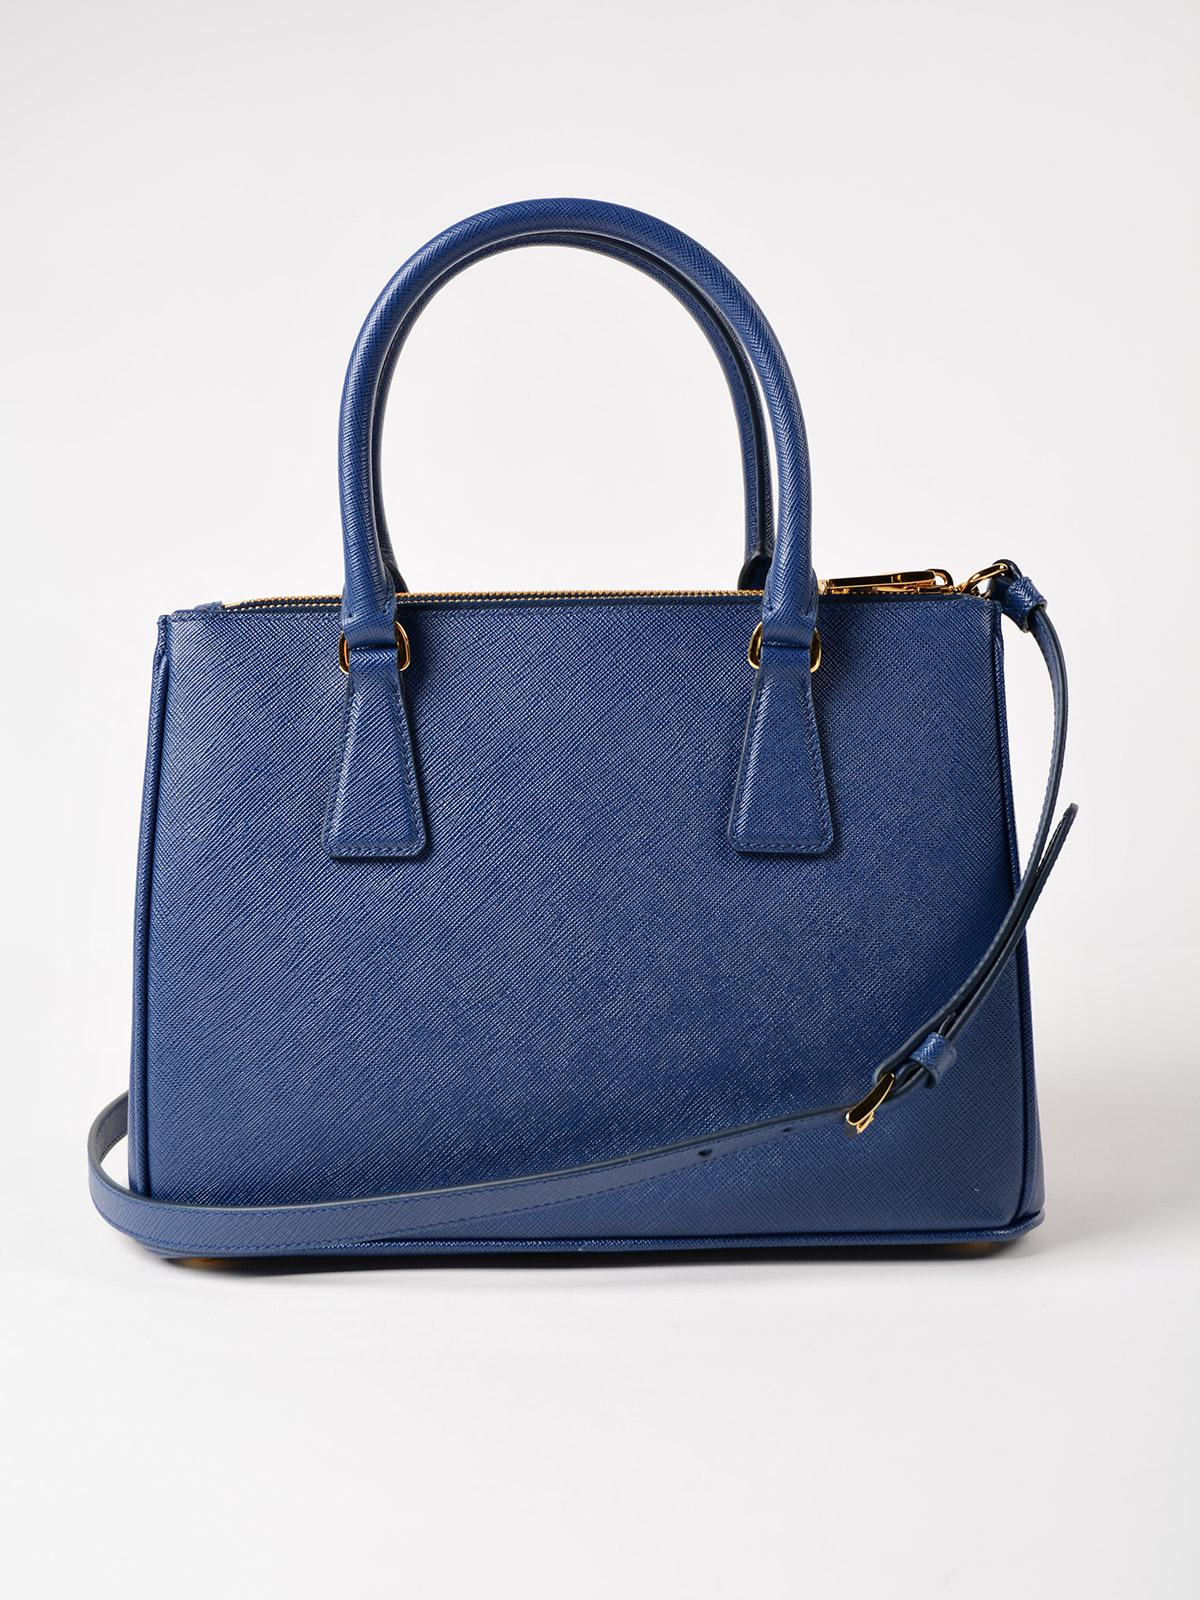 db24c68d9aac Lyst - Prada Galleria Handbag Saffiano Lux in Blue